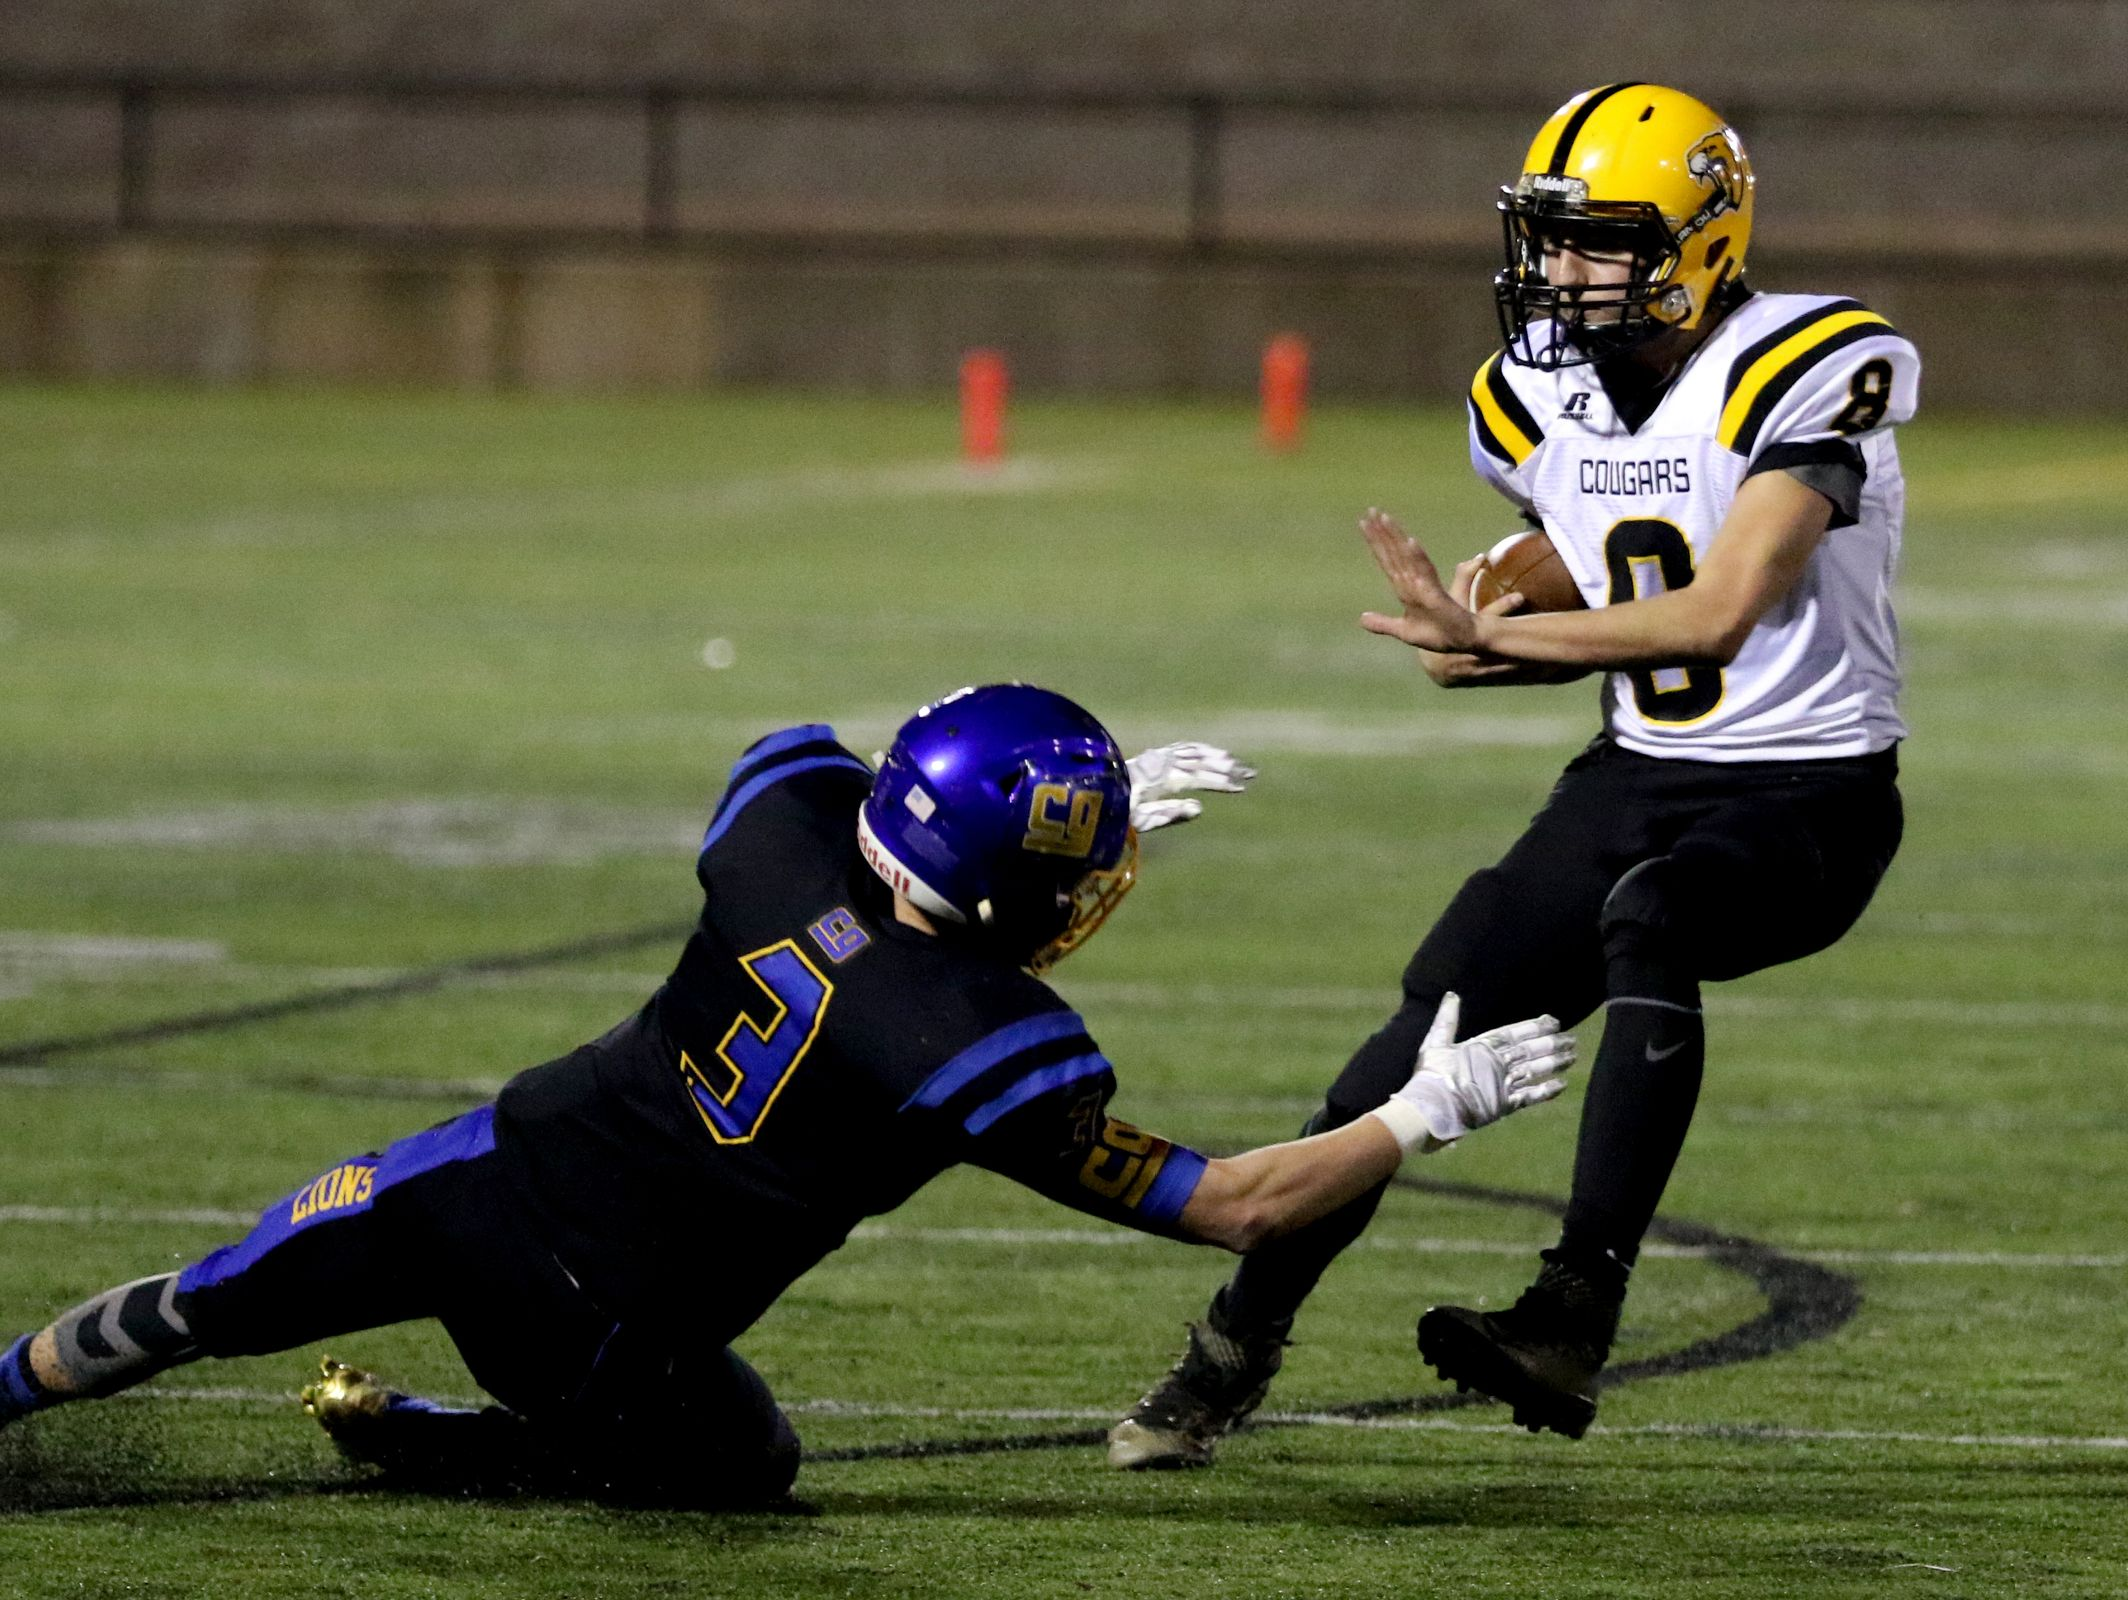 Cascade's Quinn Legner (8) moves past Cottage Grove's Kory Parent (3) in the first half of the Cascade vs. Cottage Grove OSAA Class 4A semifinal football game at Hillsboro Stadium on Saturday, Nov. 19, 2016.